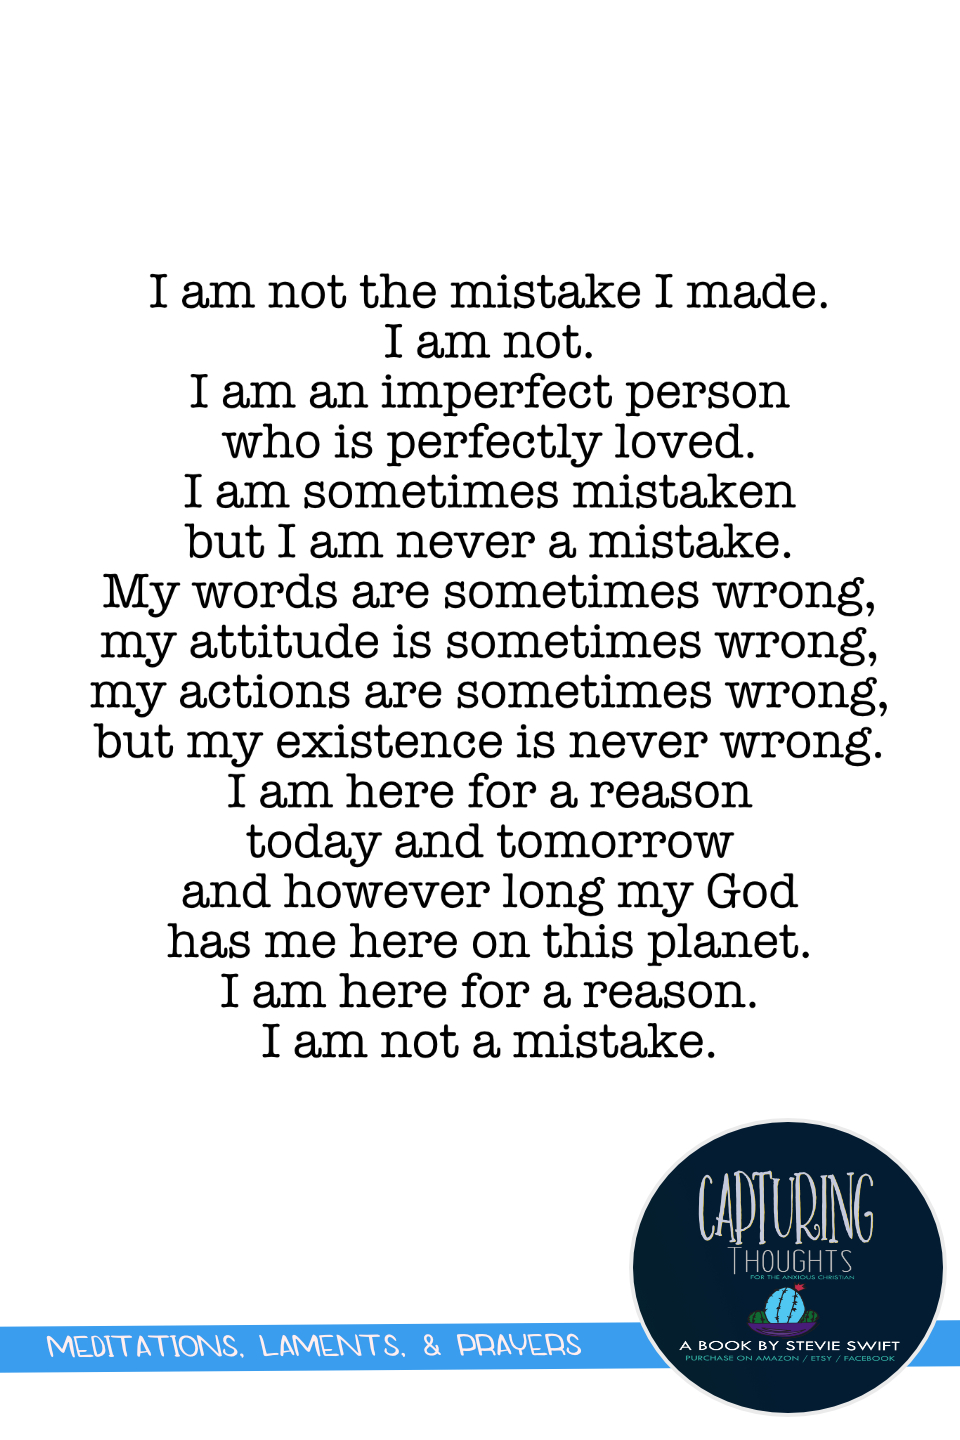 i am not the mistake i made. i am not. i am an imperfect person who is perfectly loved. i am sometimes mistaken but i am never a mistake. my words are sometimes wrong, my attitude is sometimes wrong, my actions are sometimes wrong, but my existence is never wrong. i am here for a reason